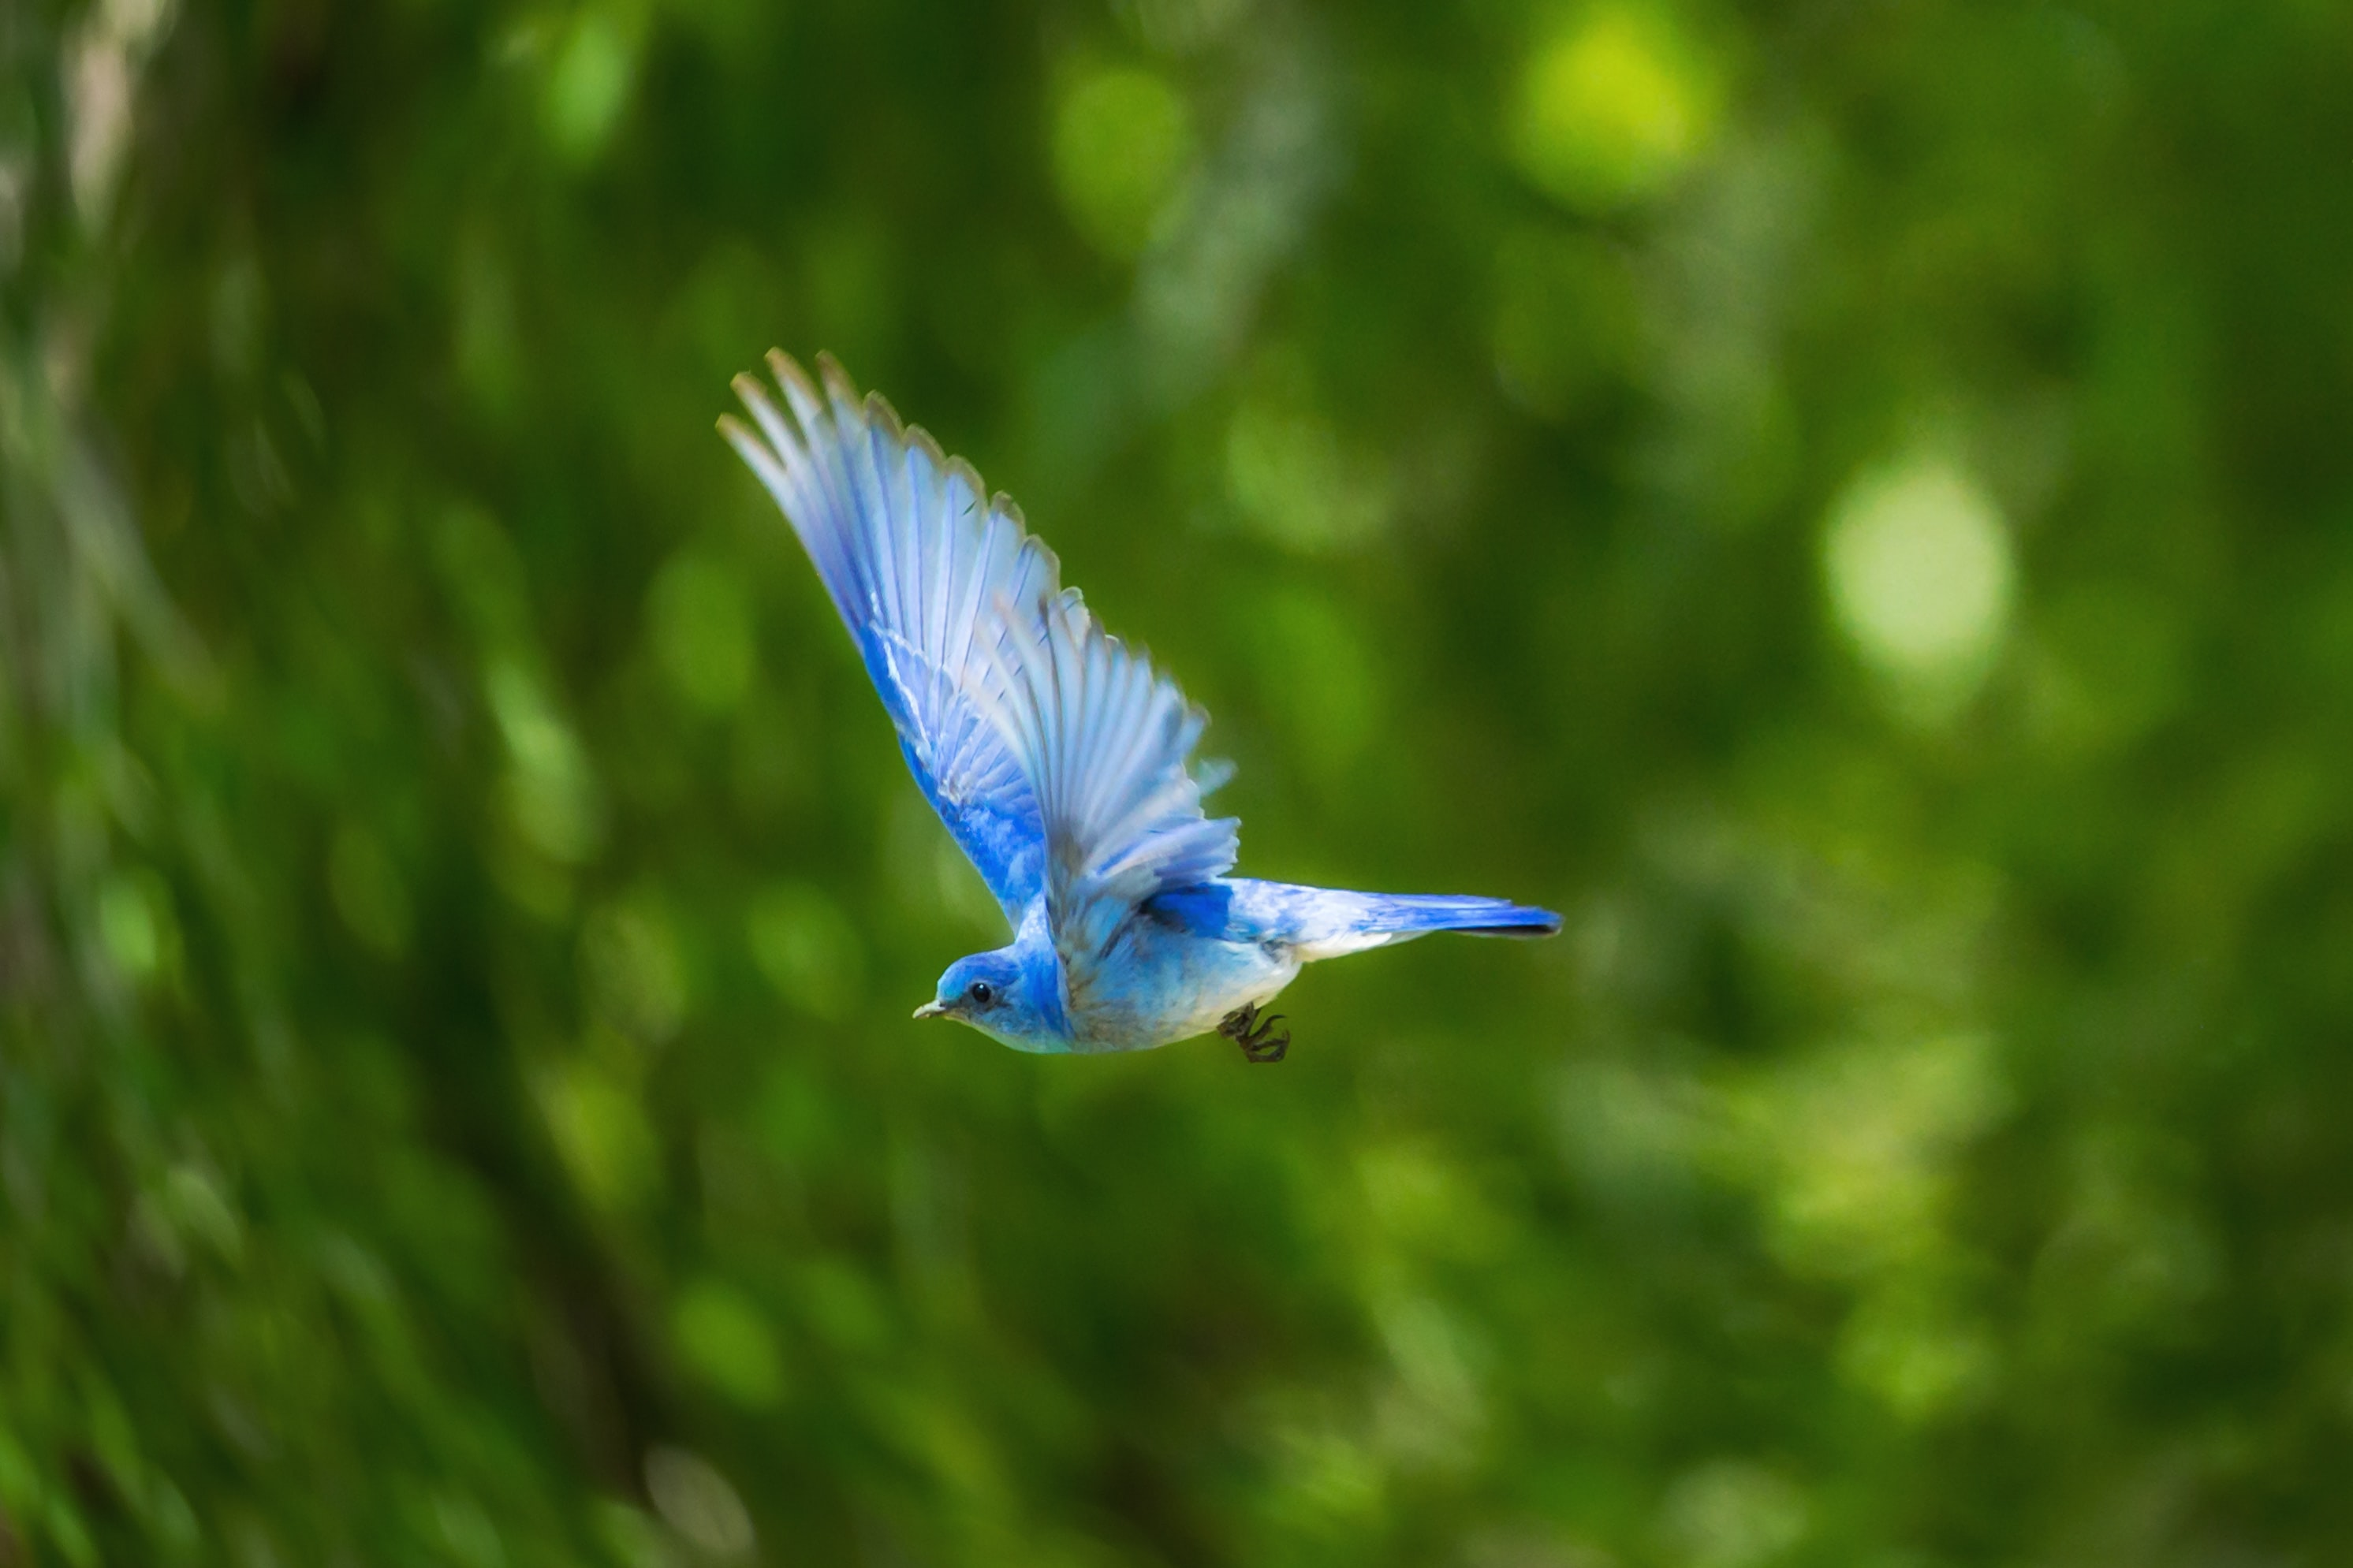 Blue hummingbird flies through the green forest